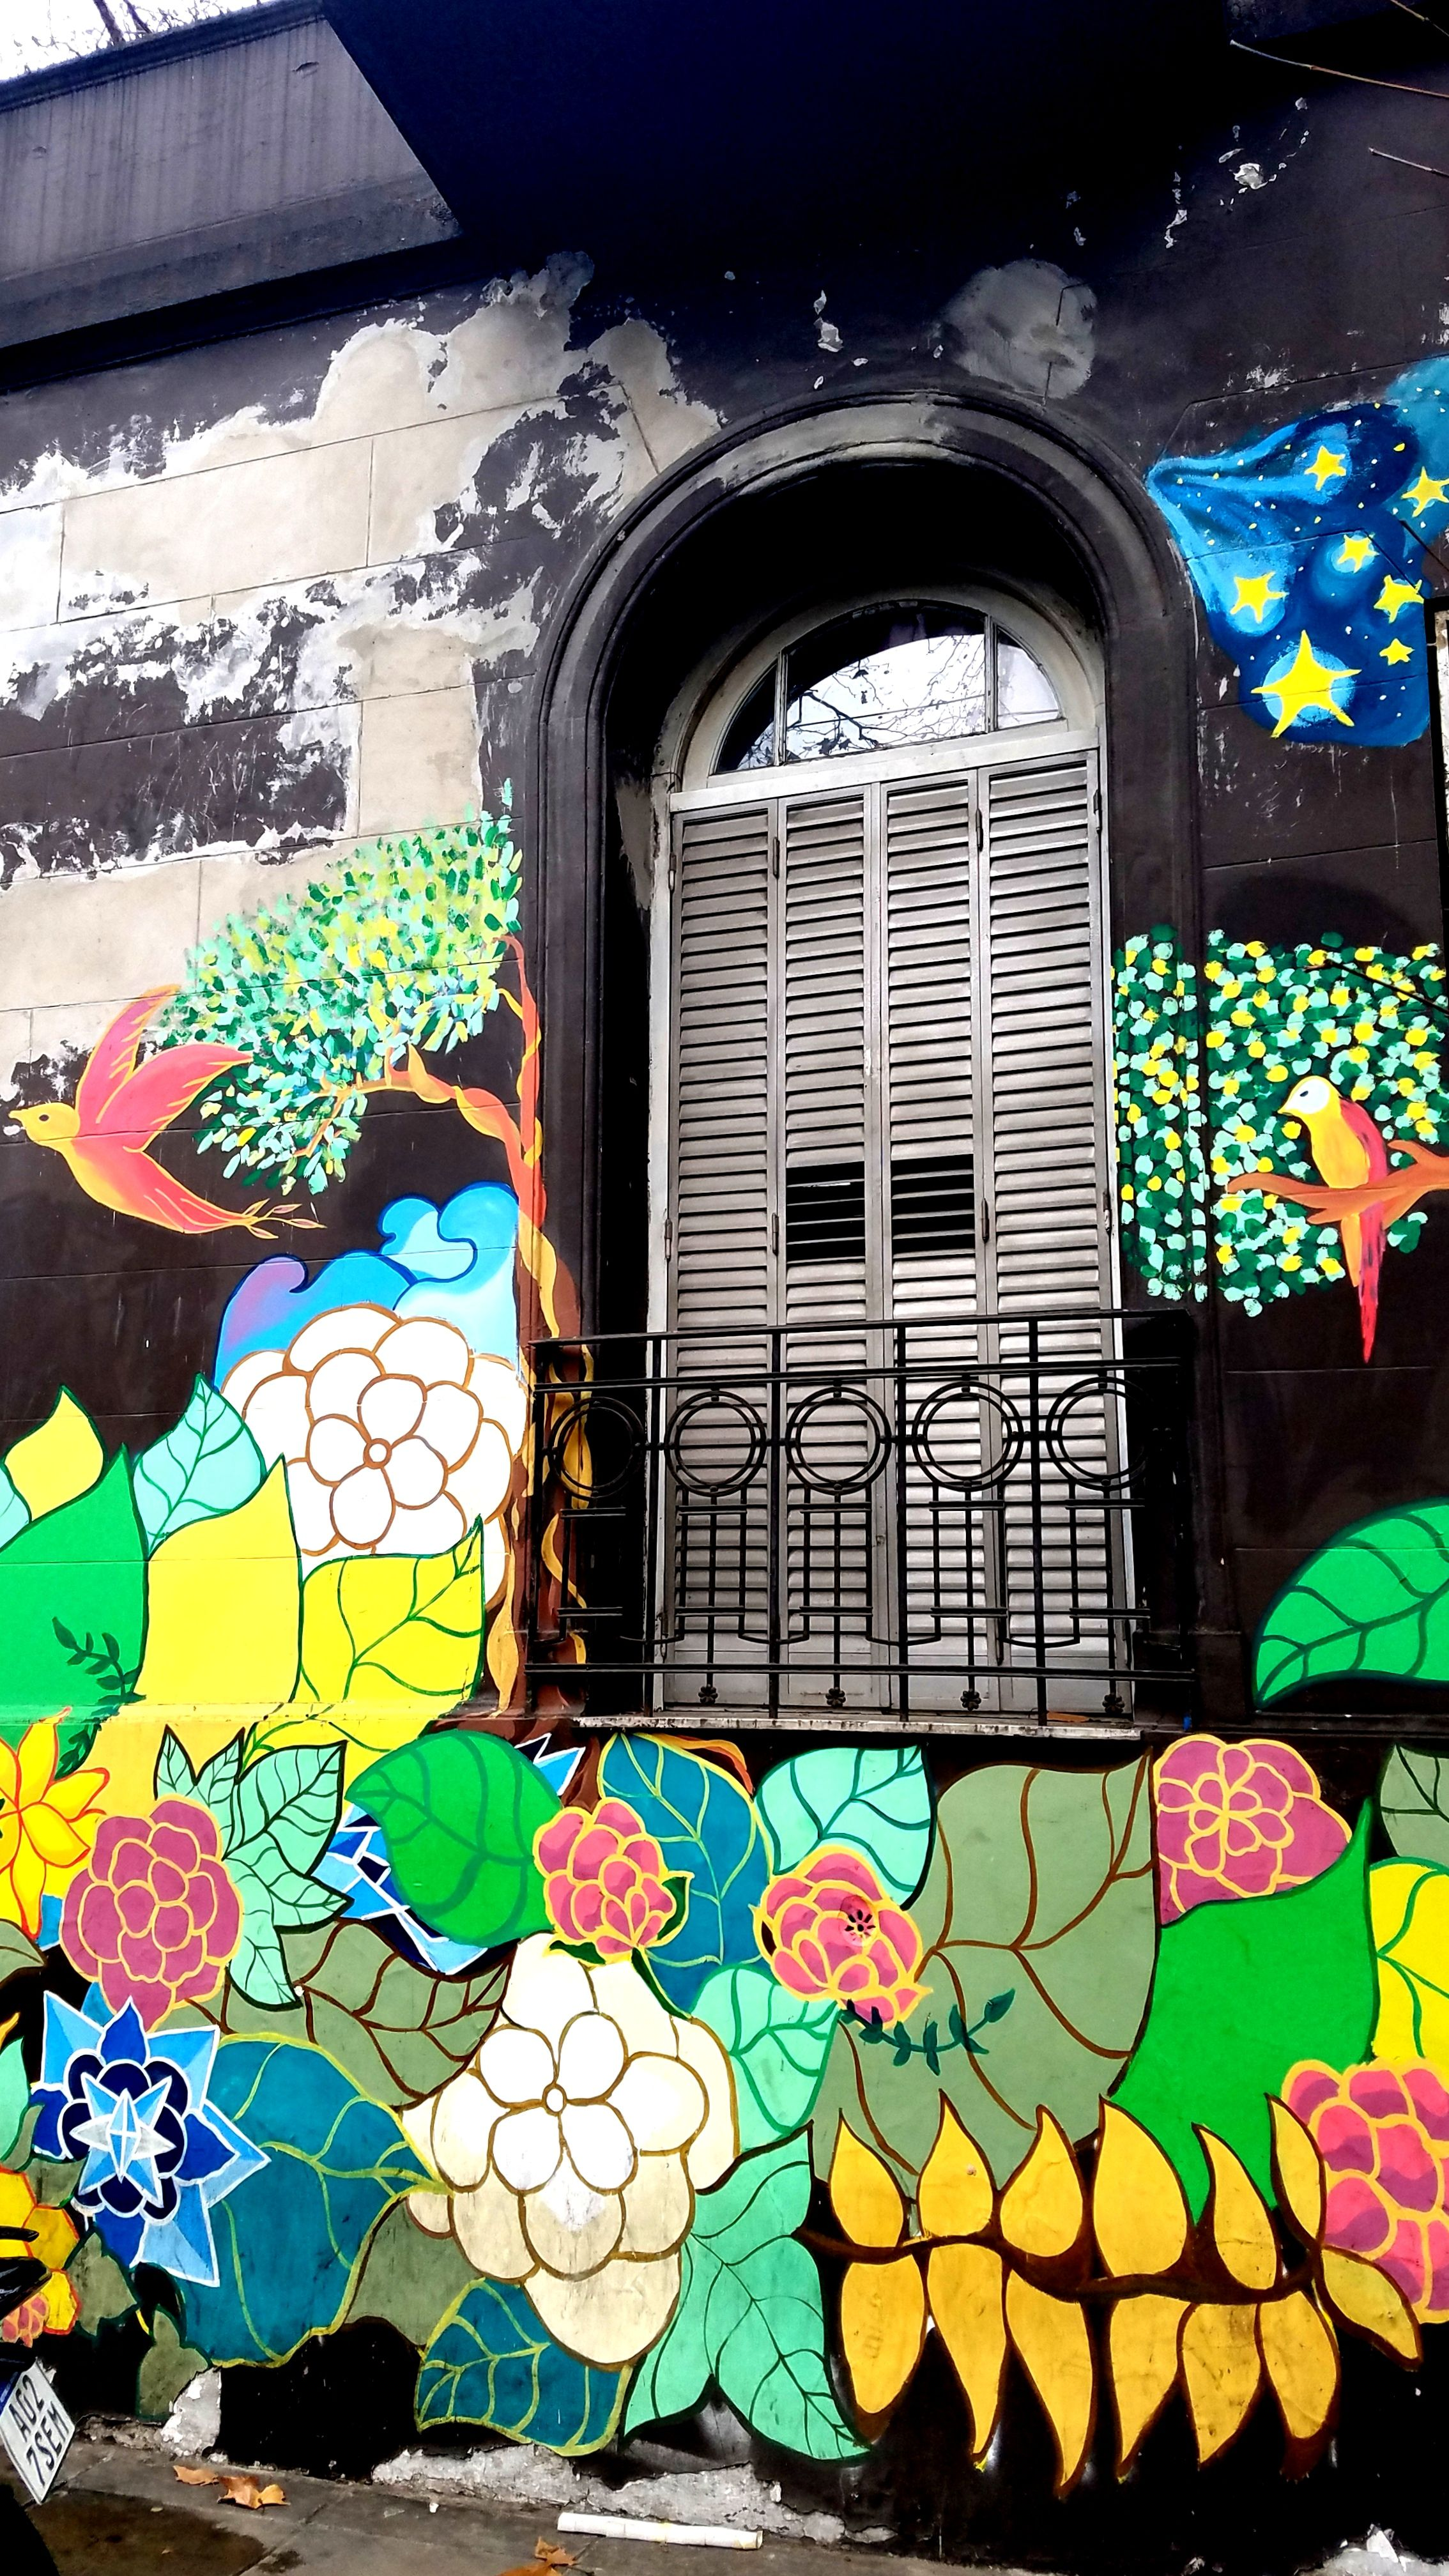 Buenos Aires Argentina Street Art Graffiti This Is From The Cool Art